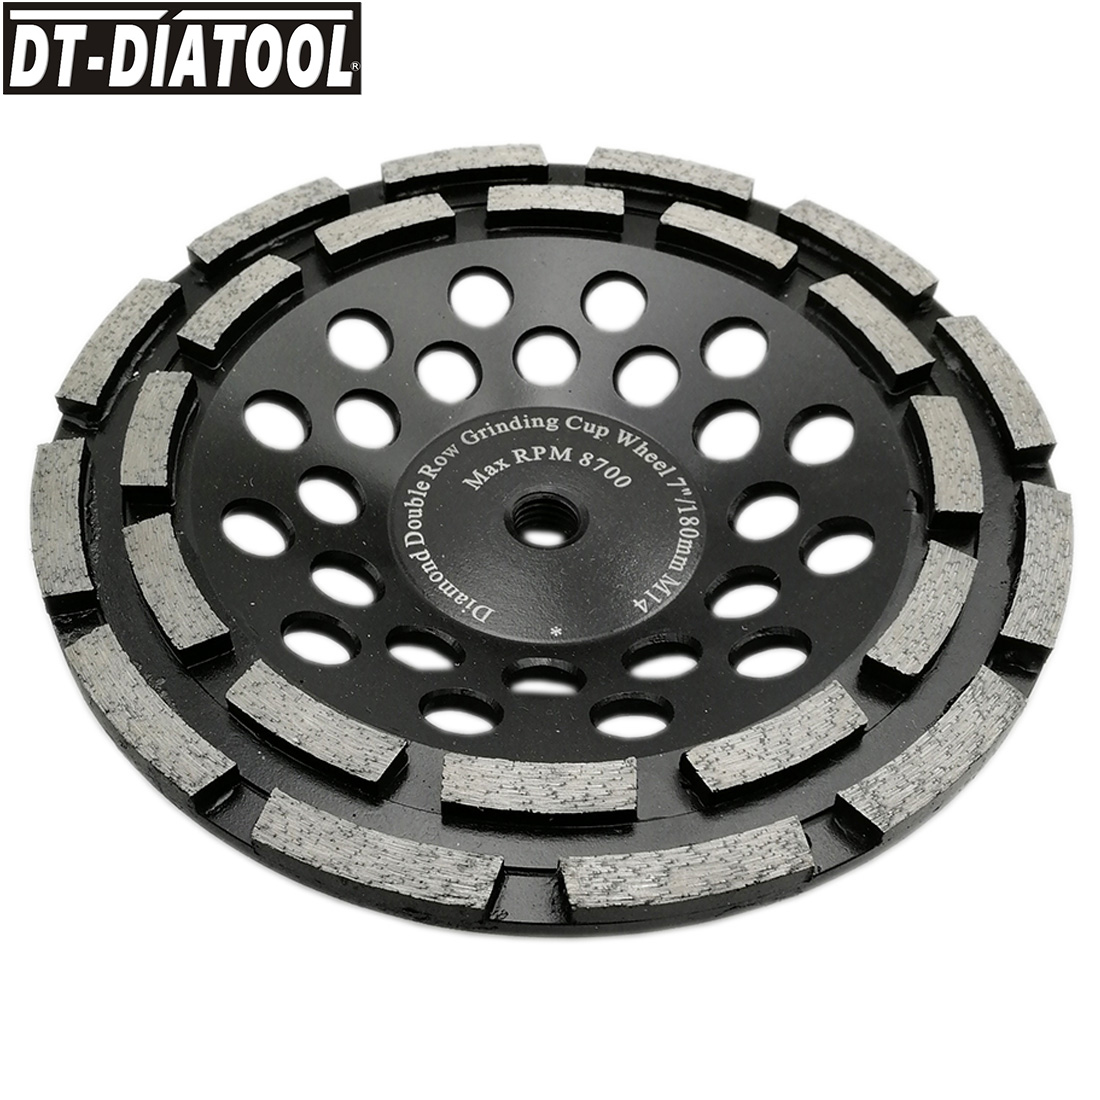 DT-DIATOOL 1pc Dia 180mm/7inch Premium Diamond Double Row Cup Grinding Wheel with M14 connection for Concrete Hard Stone Granite dt diatool 2pcs dia 7 double row diamond grinding cup wheel with 5 8 11 thread for concrete hard stone granite dia 7inch 180mm